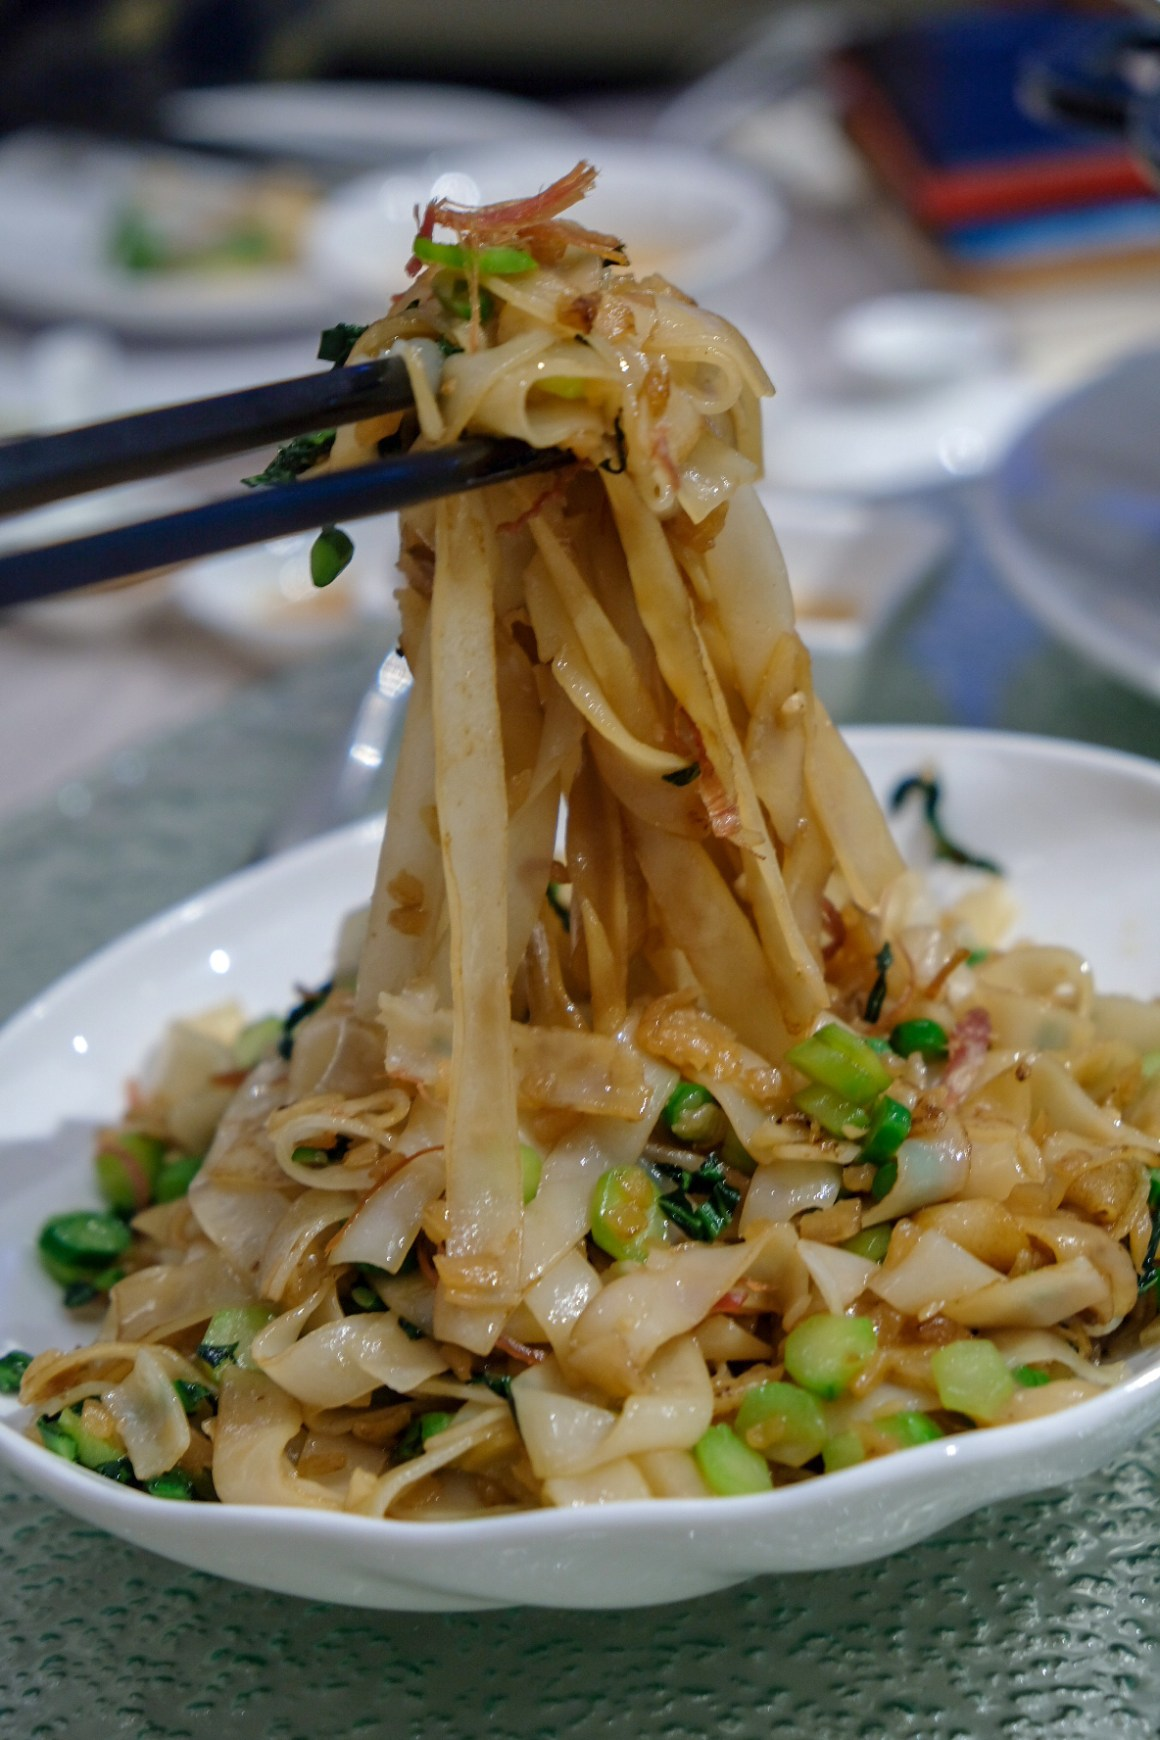 Zui Yu Xuan Teochew Restaurant At Far East Square - Wok Fried 'Kway Teow' with Dice 'Kai Lan' and Preserved Radish ($18-small/$27-medium/$36-large)